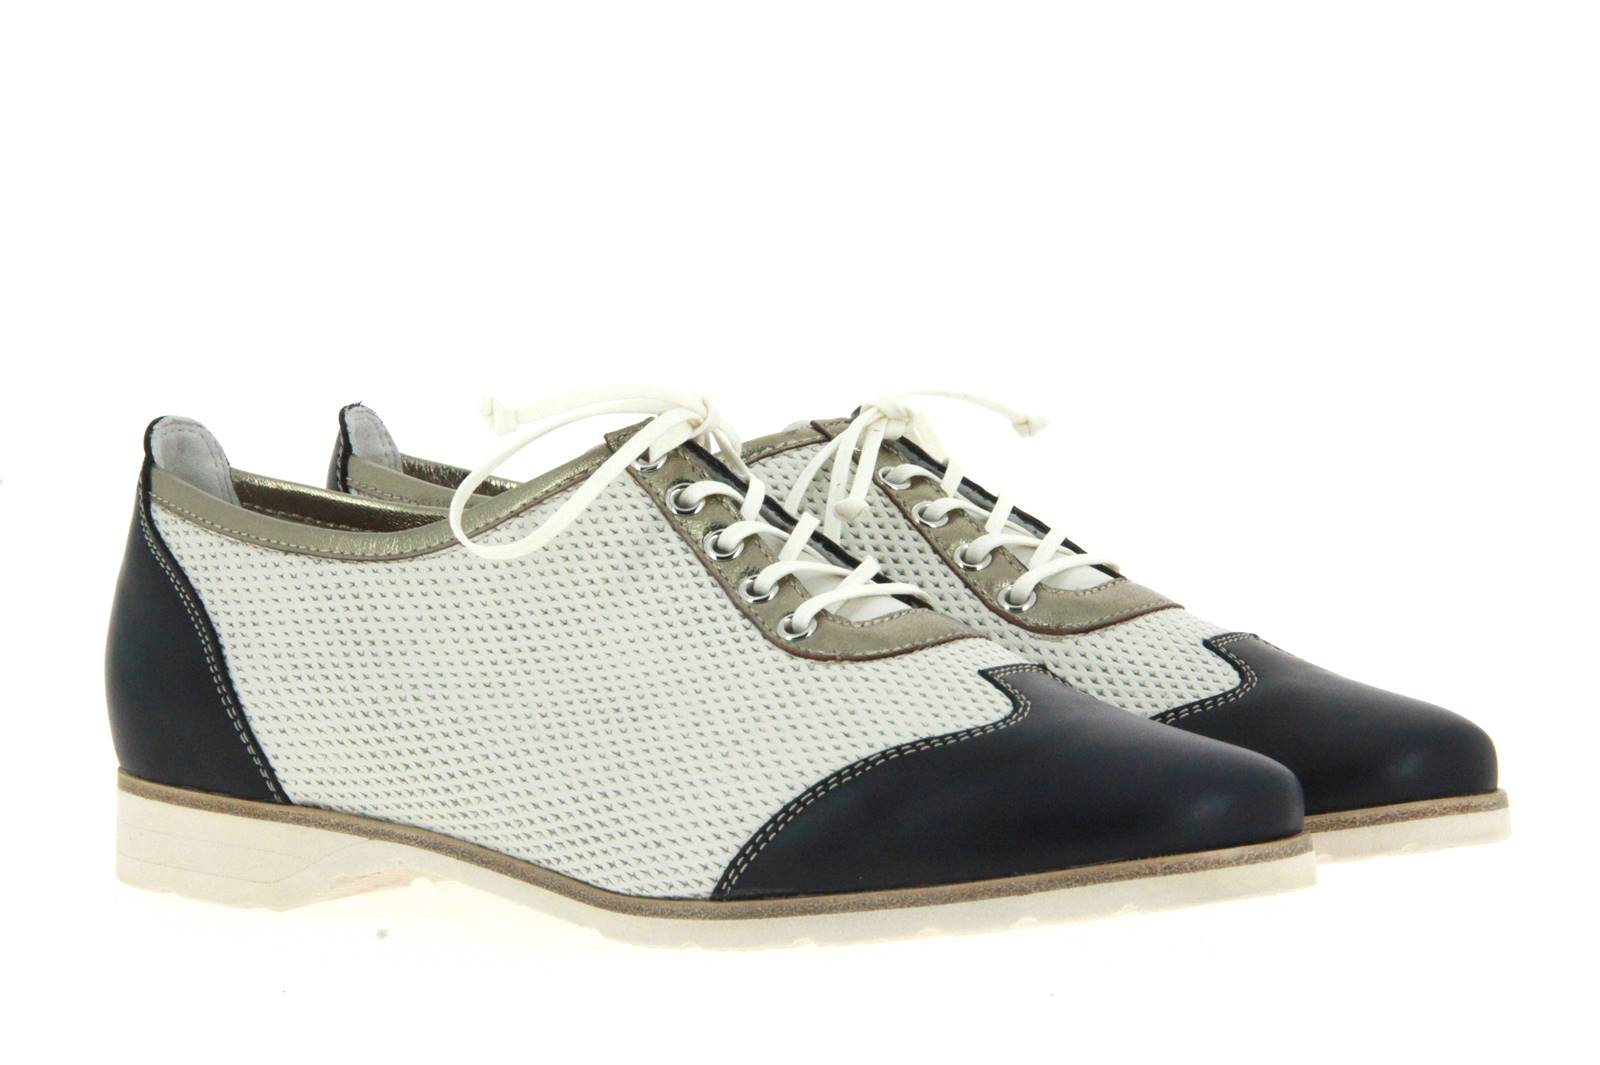 Maretto lace-up ICE BLEU ALBA